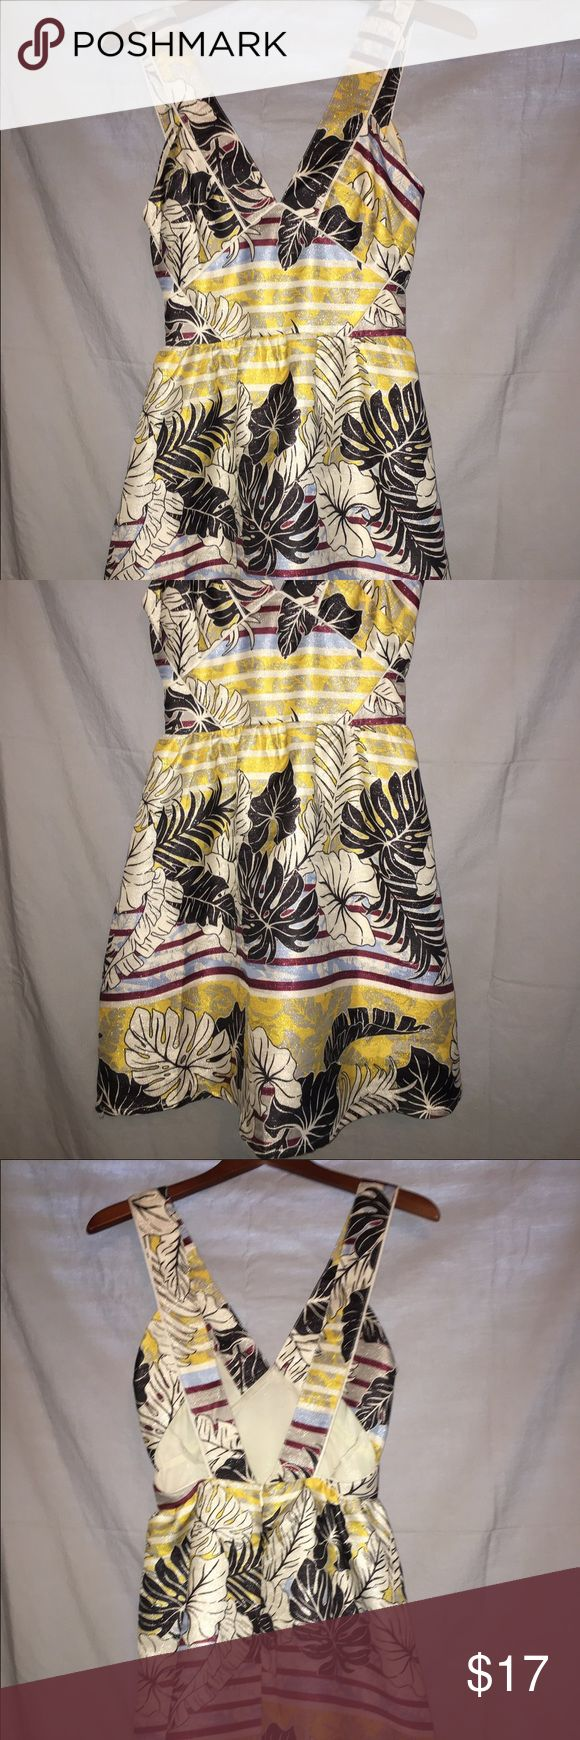 H&M cocktail dress Sparkly floral pattern! Big in the bust. Never worn! H&M Dresses